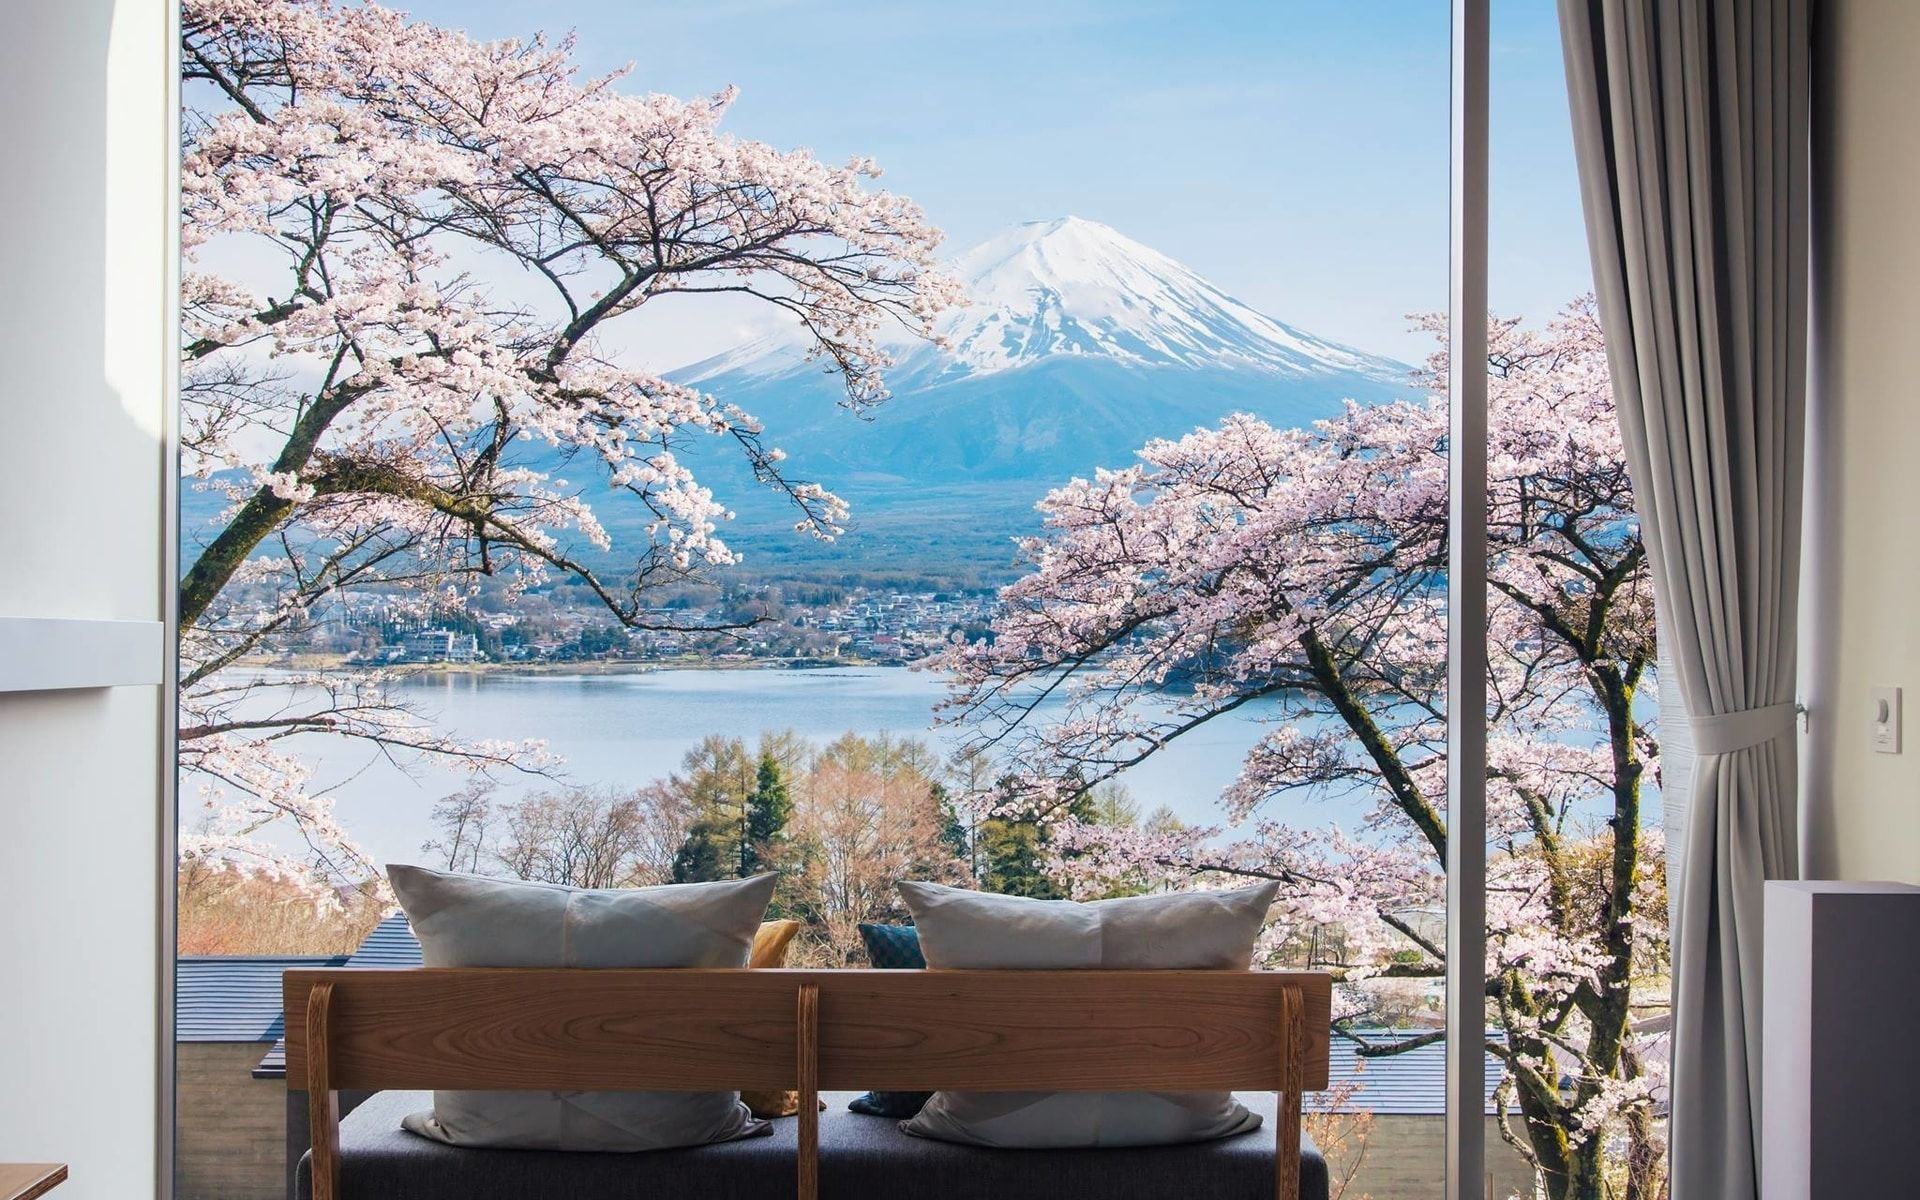 Room With A View? These 7 Luxury Hotel Rooms Won't Disappoint